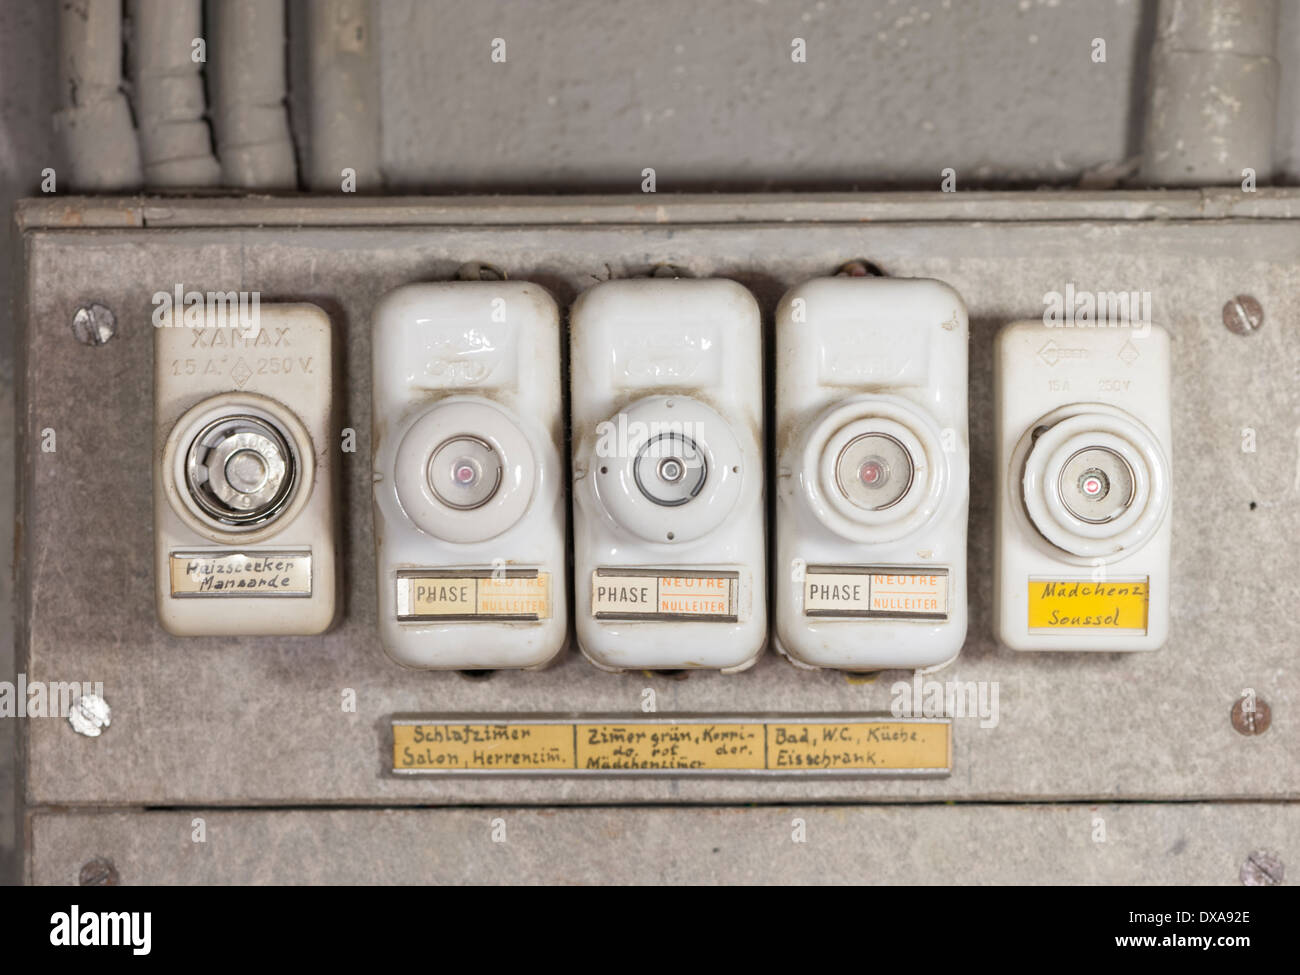 Old Fuses Fuse Box Stock Photos Images The Phase Close Up Of An Array Fashioned Lead In A Household